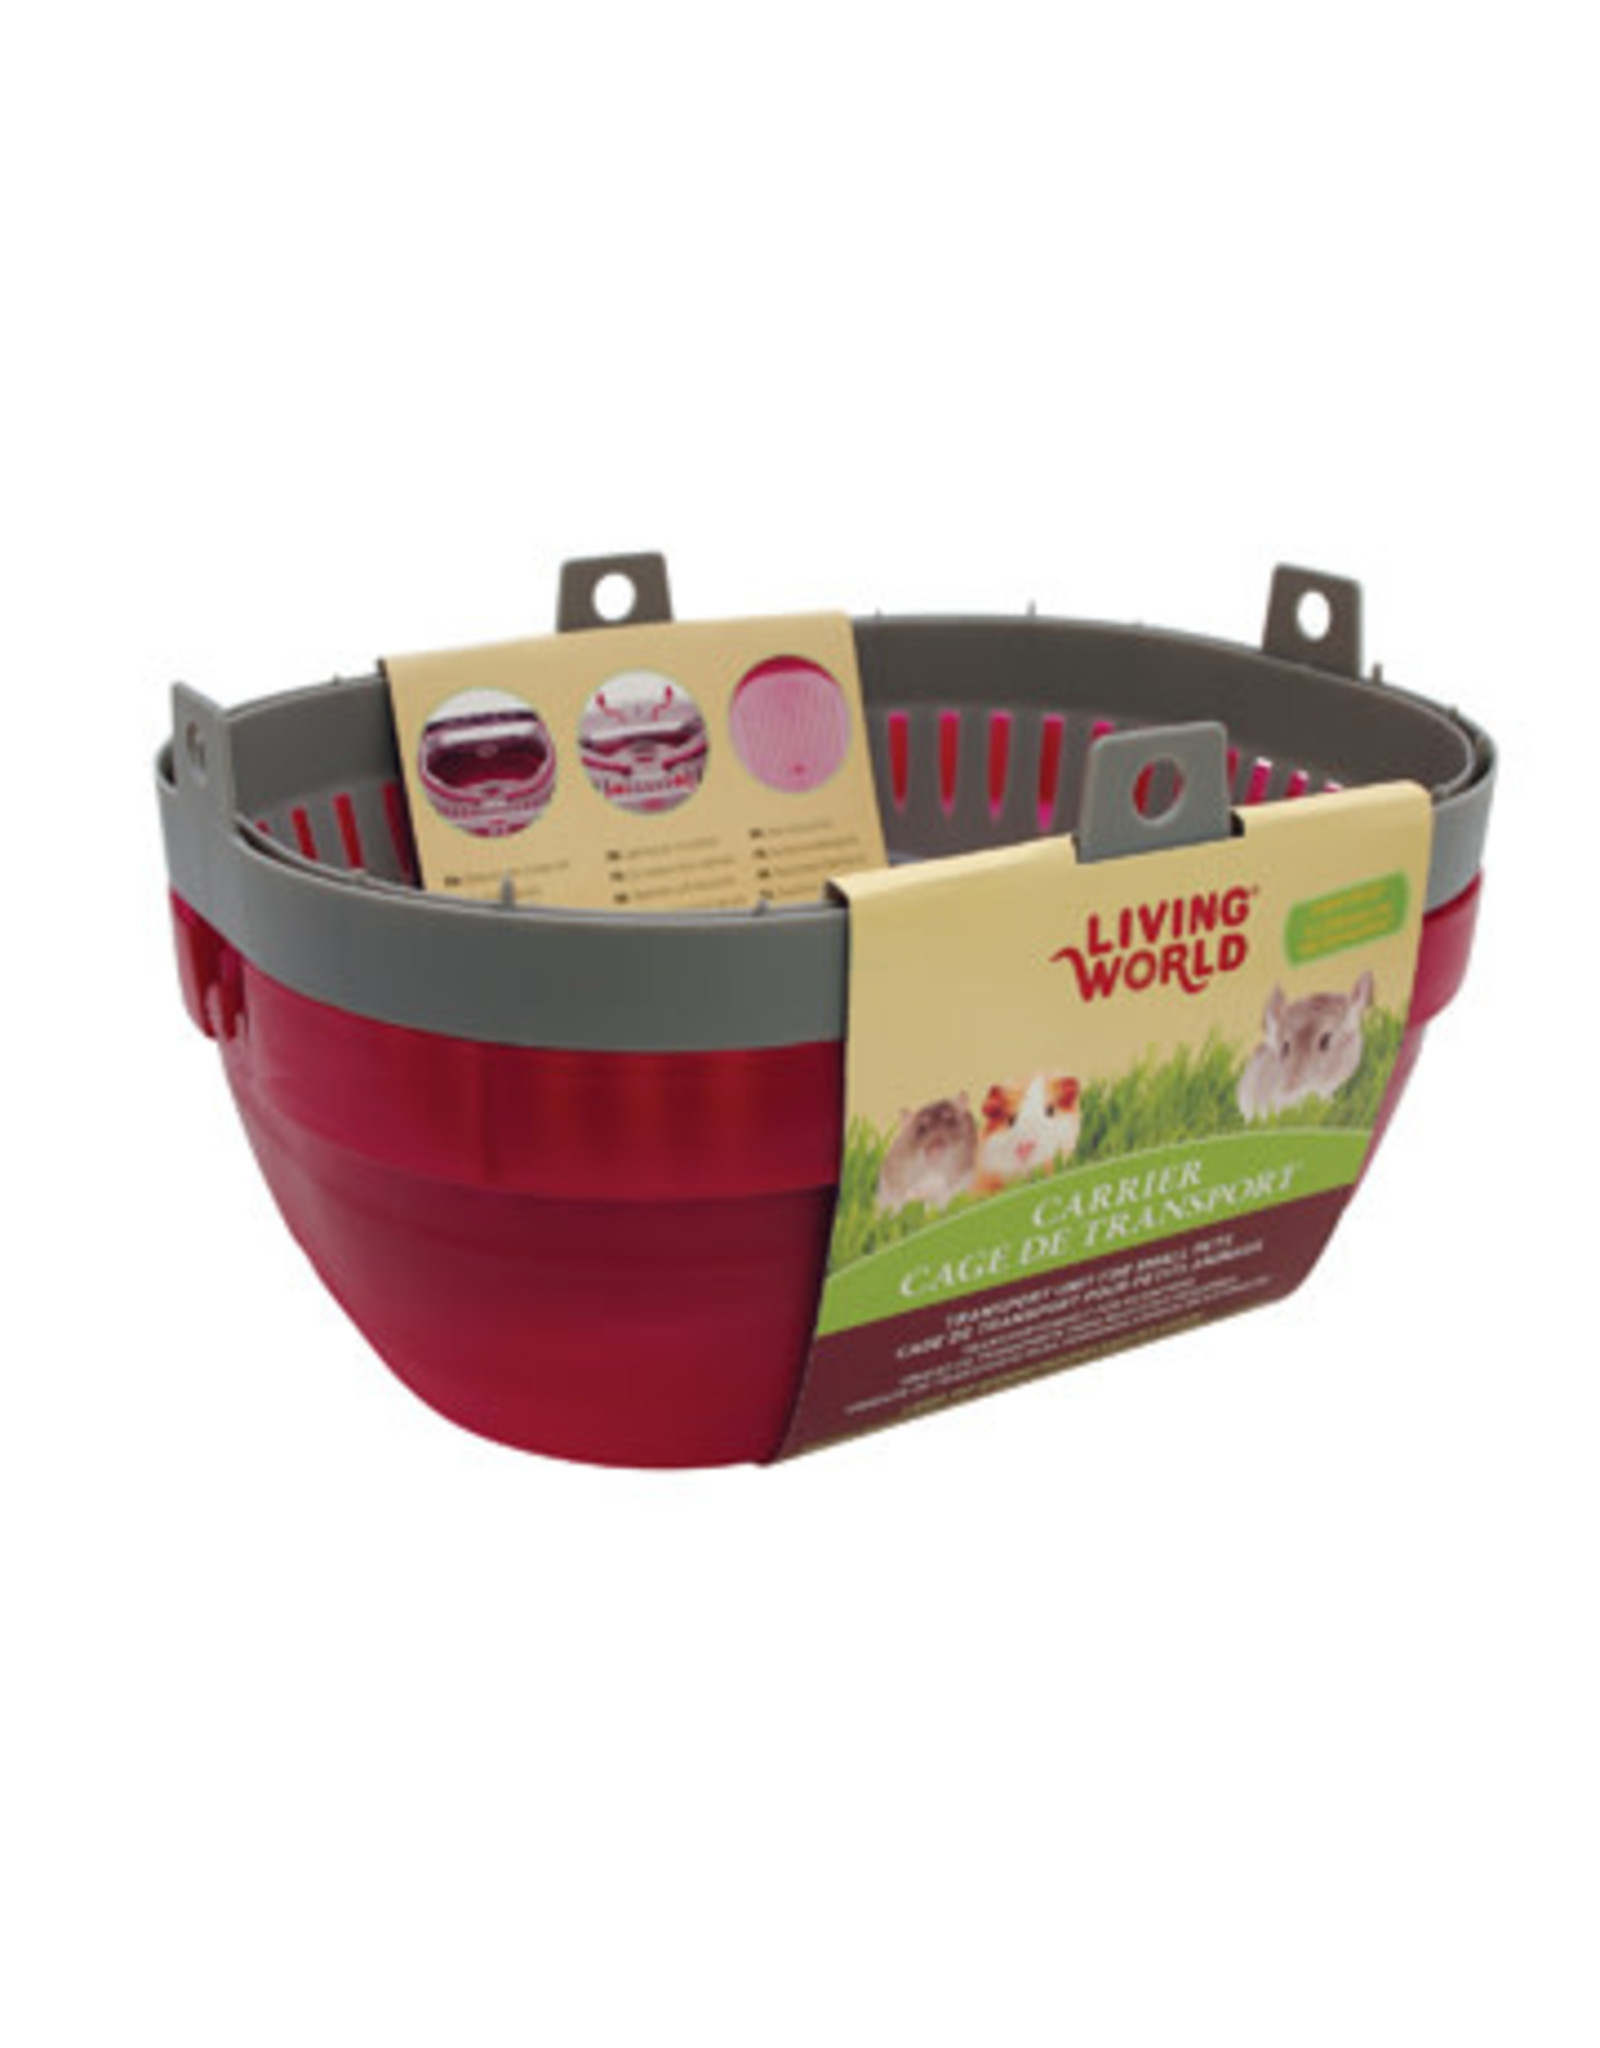 Living World Carrier for Small Pets - Large - Red/Grey